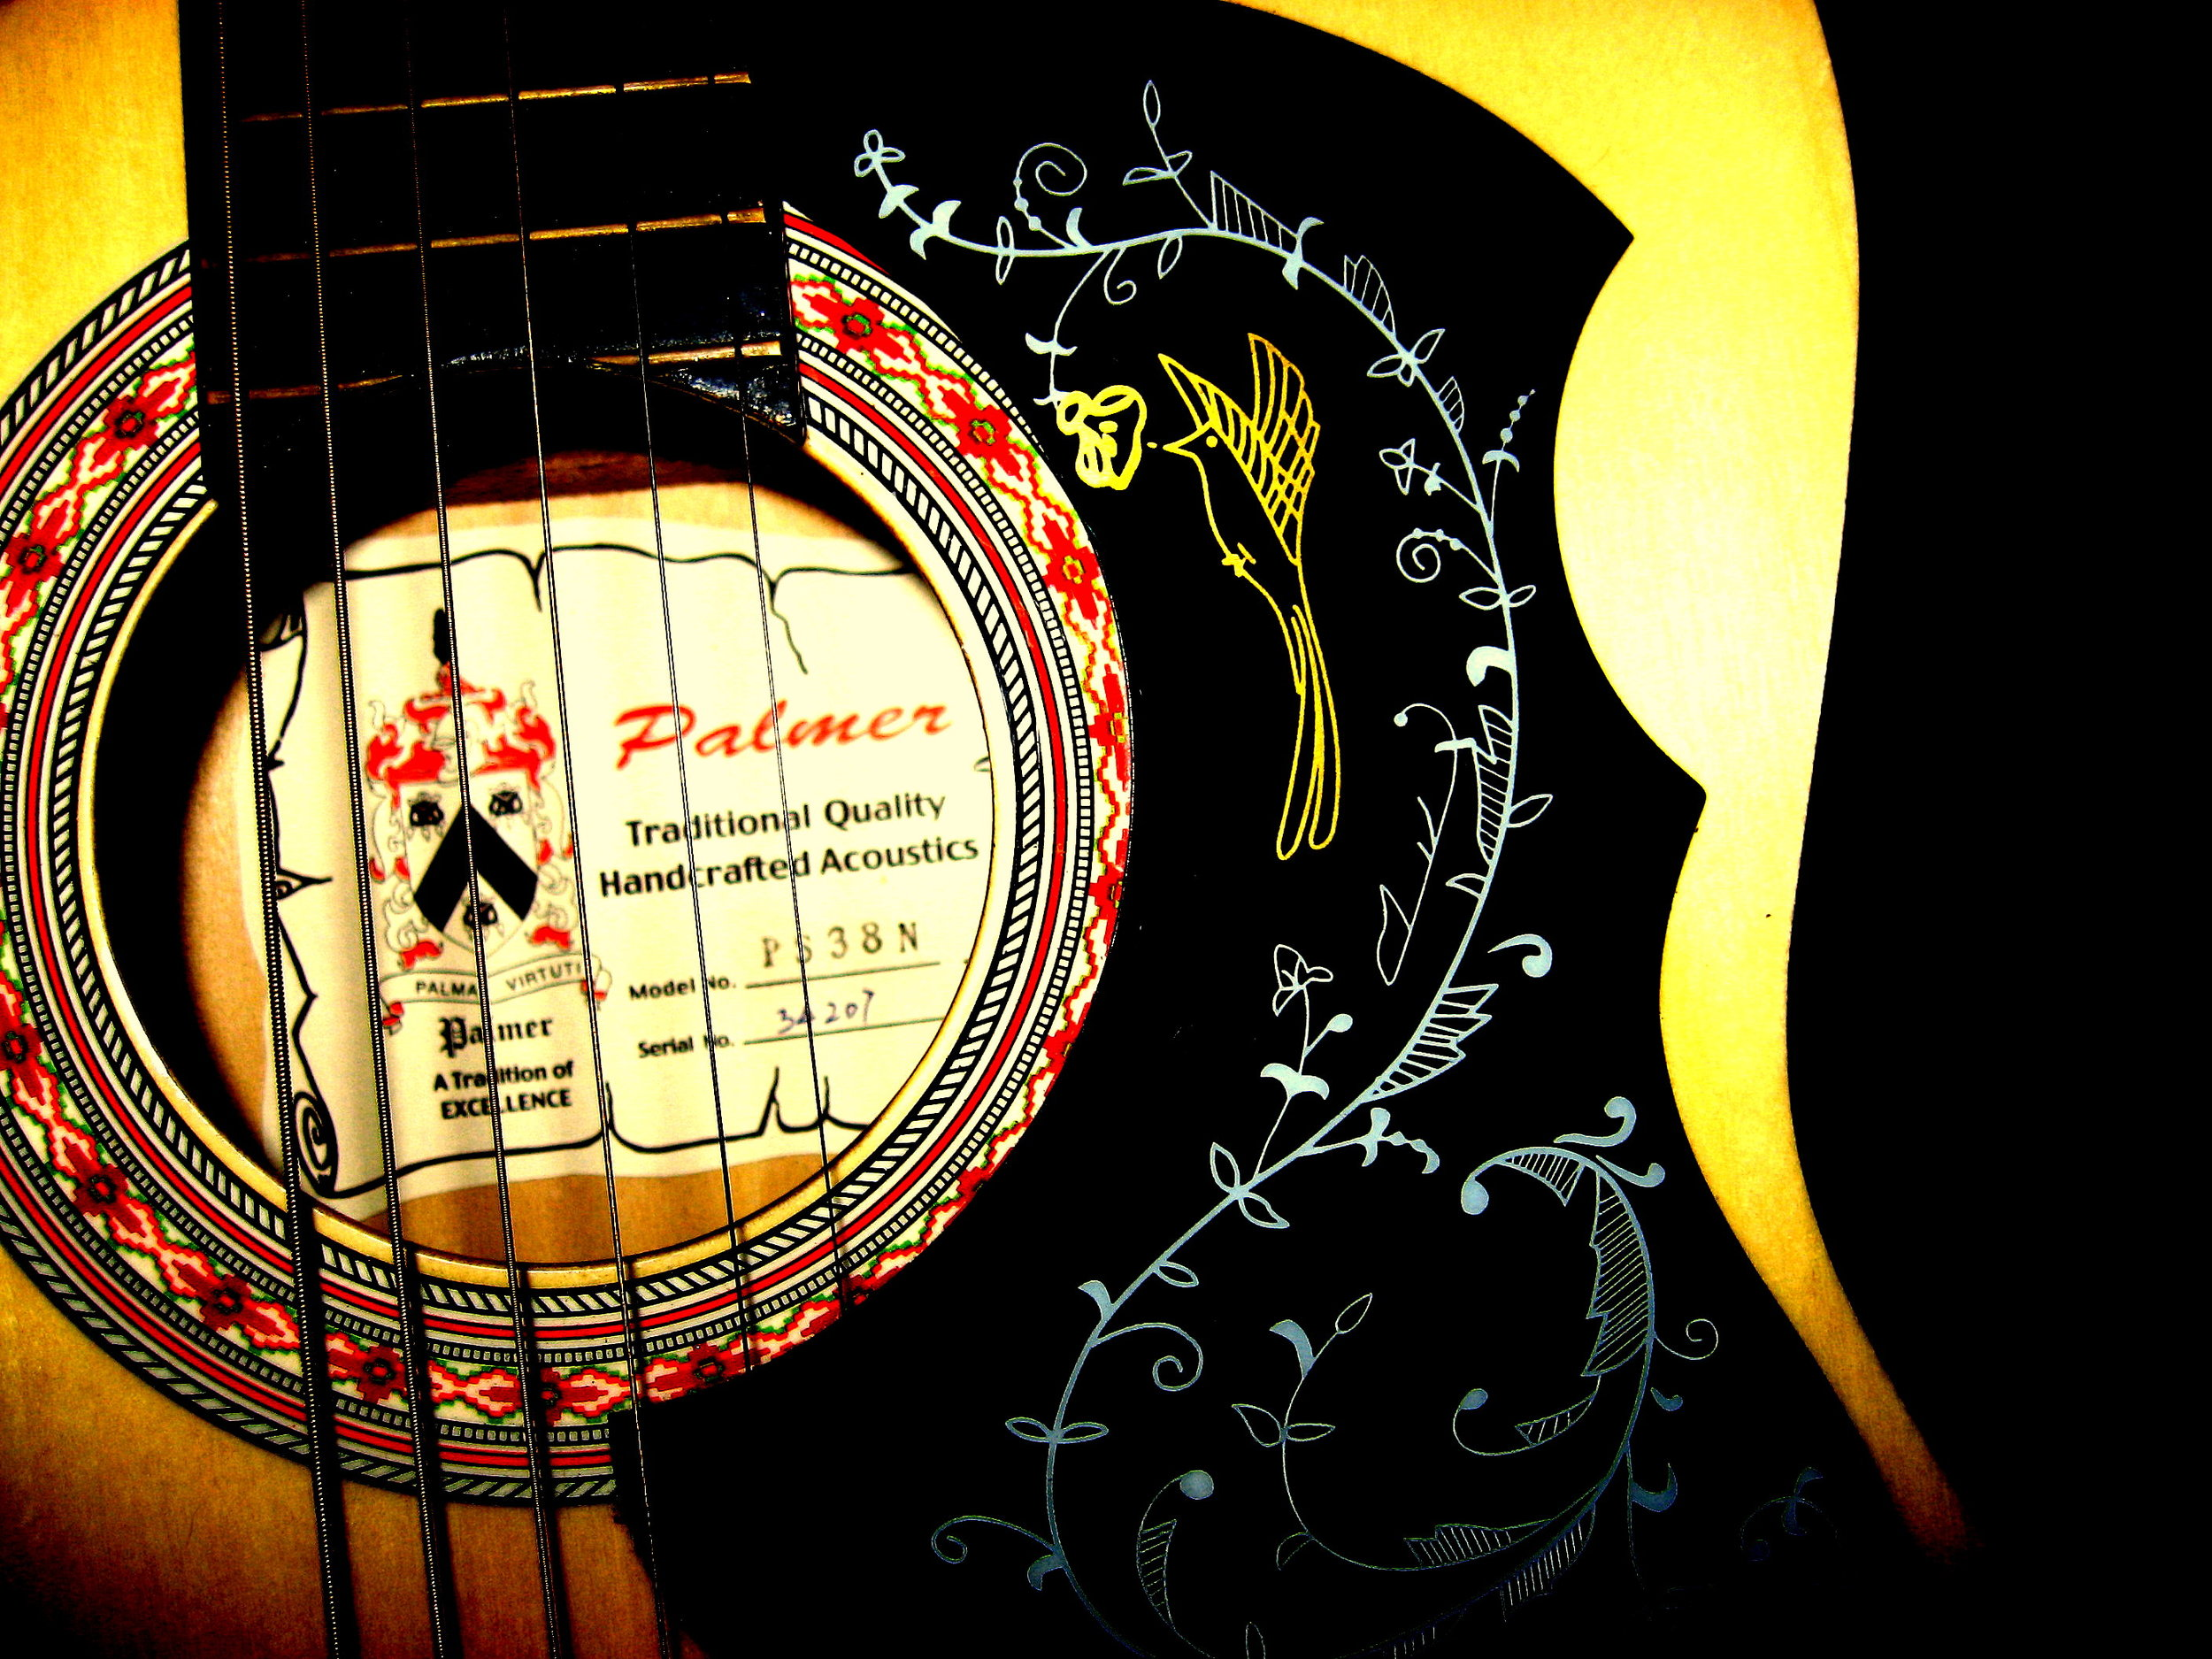 Palmer PS38  N 3/4 size Folk Guitar close-up  by  amberrgerr ,  Creative Commons   Attribution 3.0 Unported